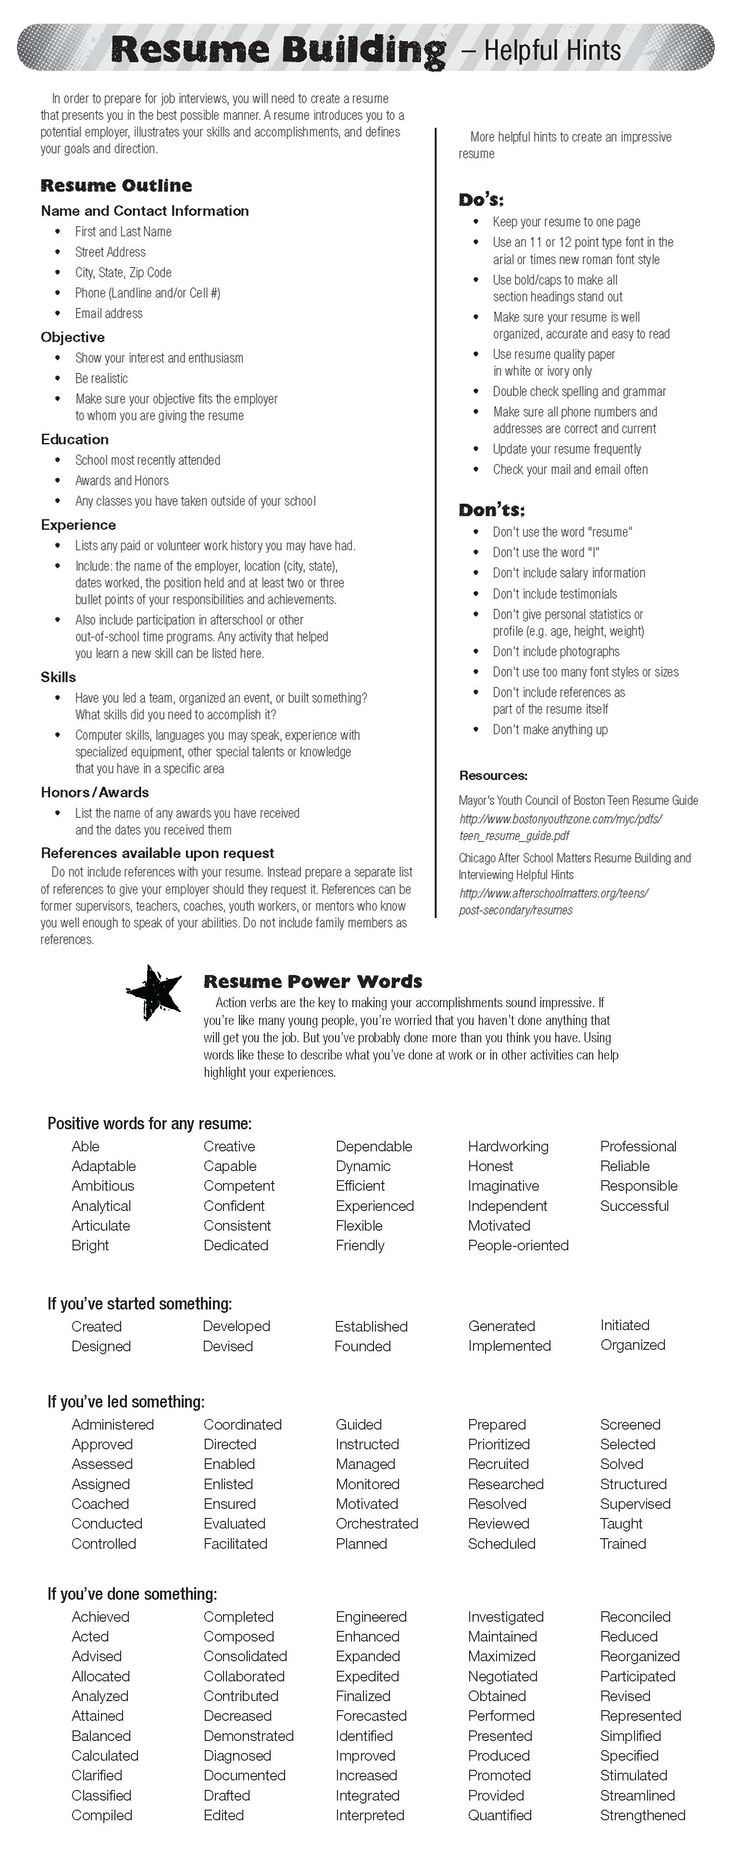 Opposenewapstandardsus  Scenic  Ideas About Resume On Pinterest  Cv Format Resume Cv And  With Heavenly  Ideas About Resume On Pinterest  Cv Format Resume Cv And Resume Templates With Alluring Resume Profile Summary Also Resume Templates Word  In Addition List Of Resume Skills And Dental Receptionist Resume As Well As Graduate School Resume Template Additionally Job Resume Objective From Pinterestcom With Opposenewapstandardsus  Heavenly  Ideas About Resume On Pinterest  Cv Format Resume Cv And  With Alluring  Ideas About Resume On Pinterest  Cv Format Resume Cv And Resume Templates And Scenic Resume Profile Summary Also Resume Templates Word  In Addition List Of Resume Skills From Pinterestcom